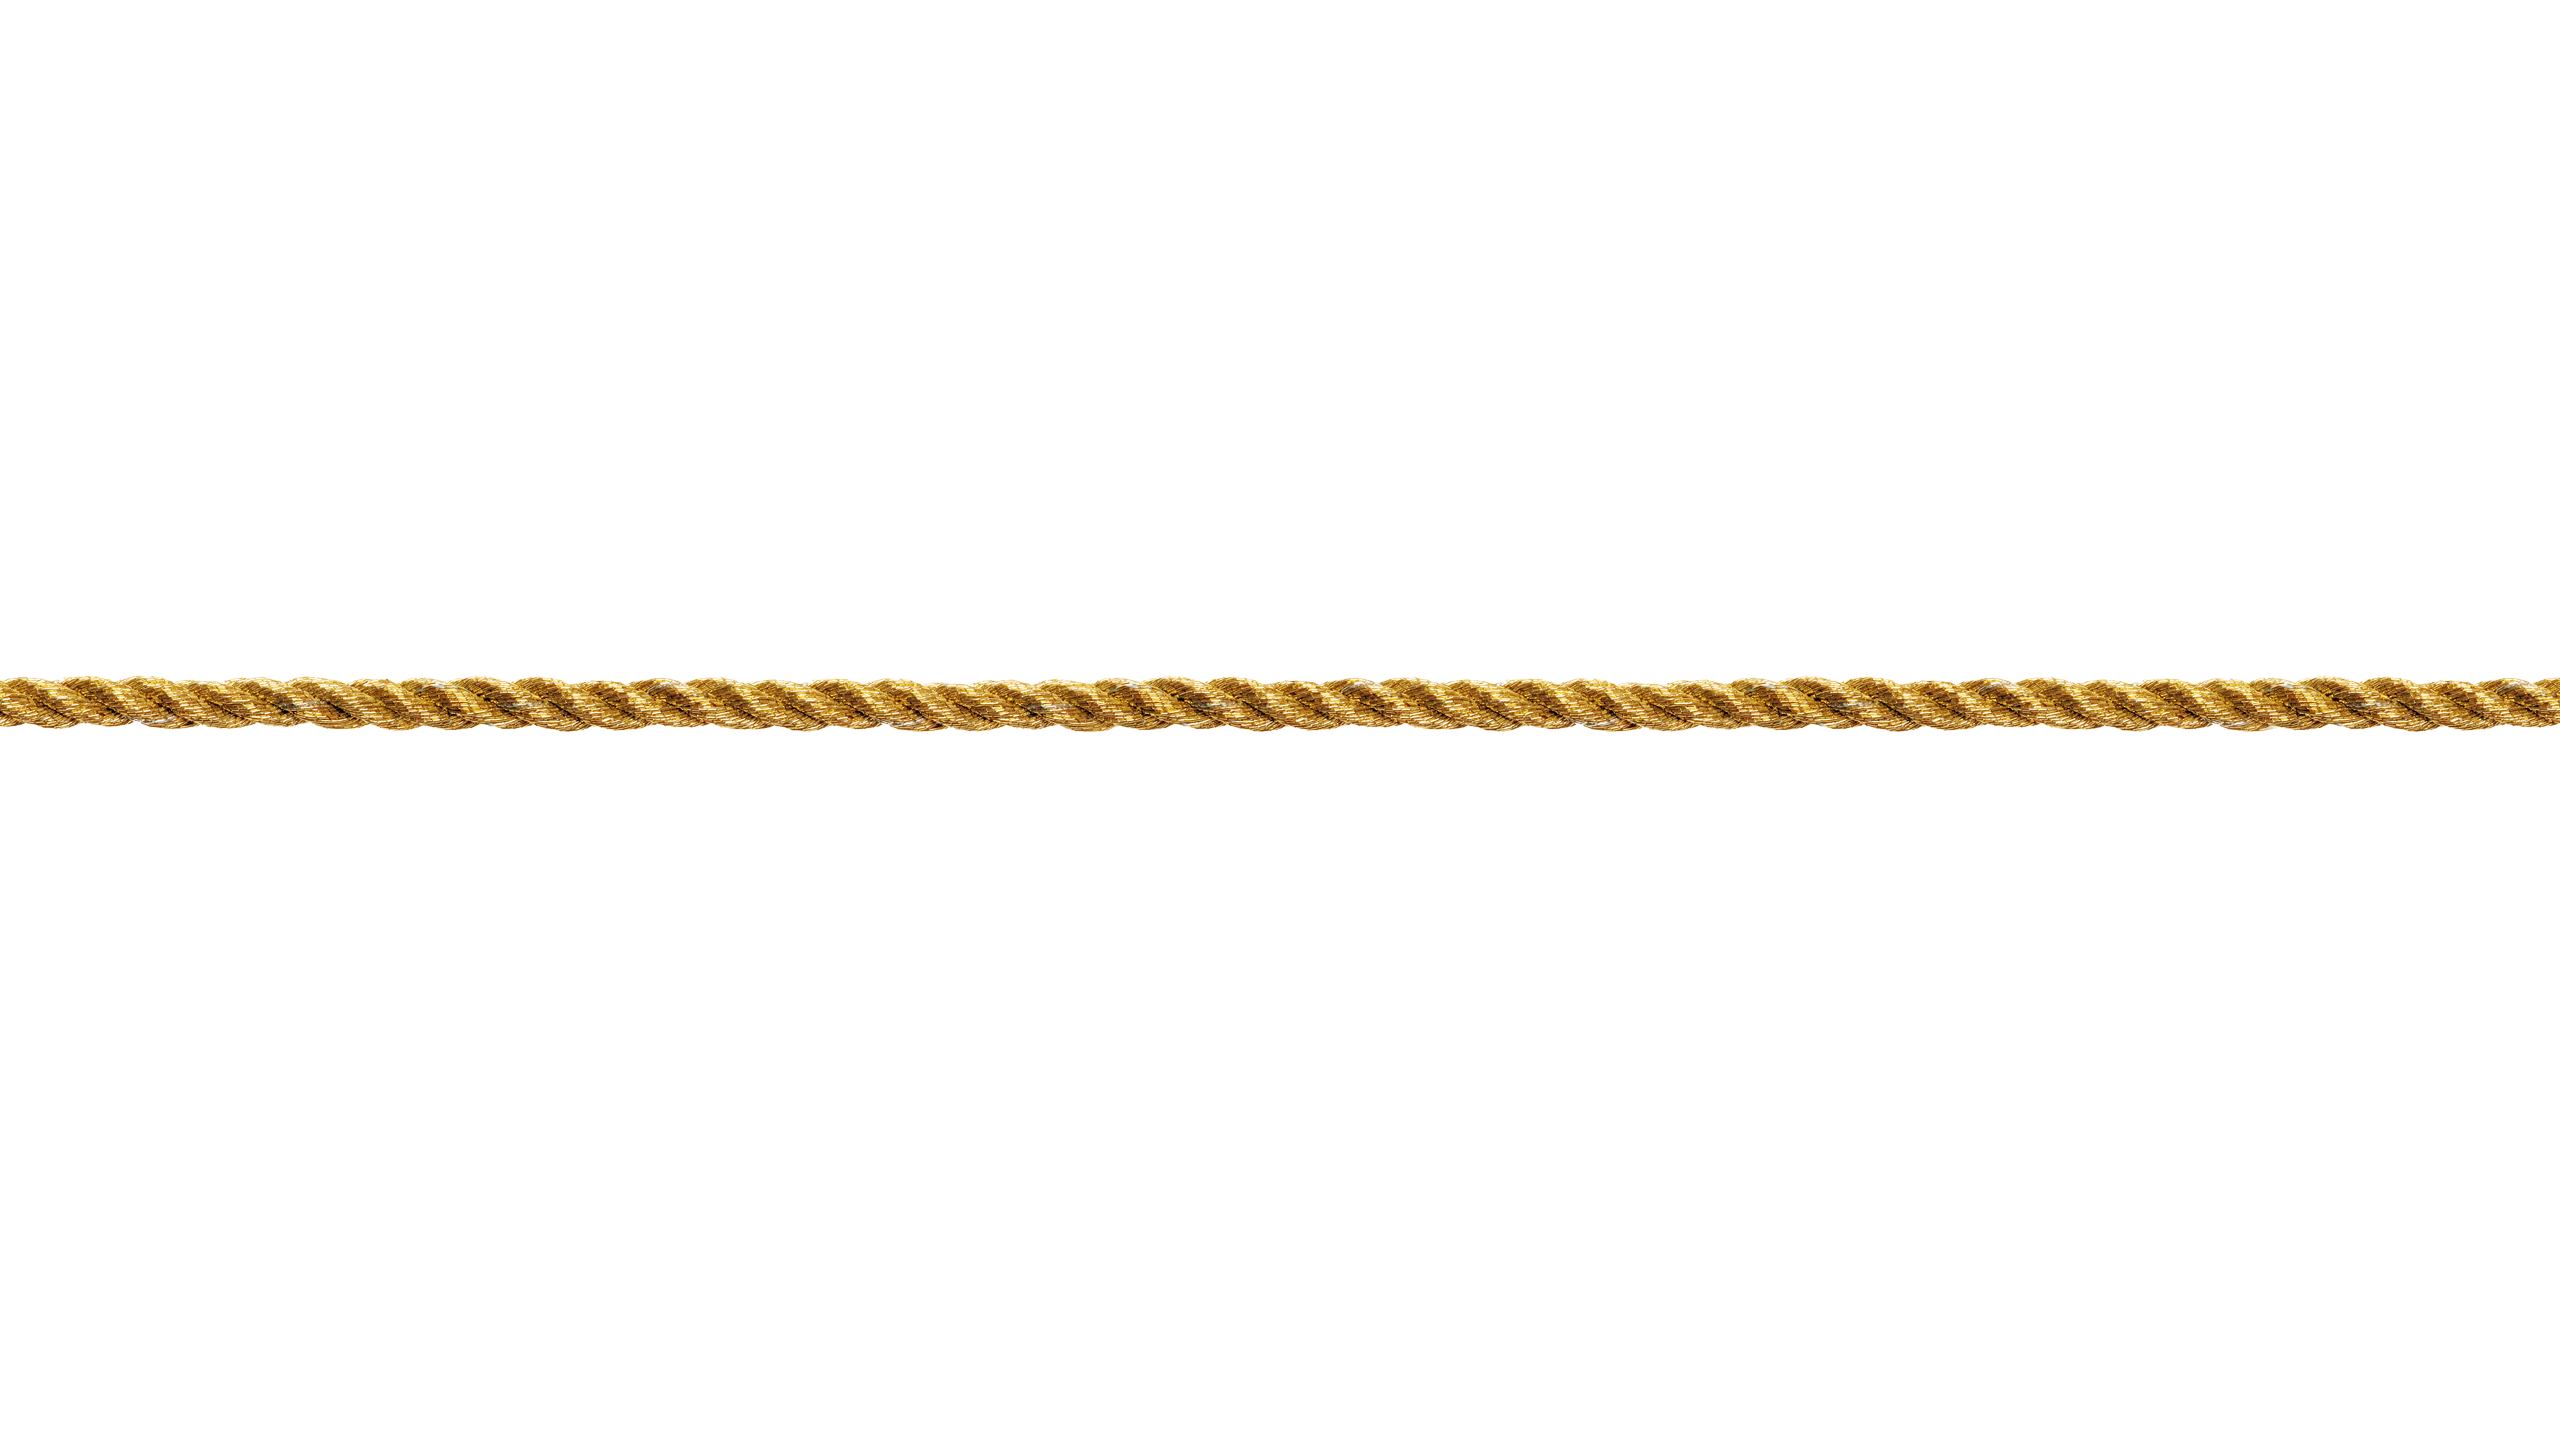 Rope Line Png Picture image #45150